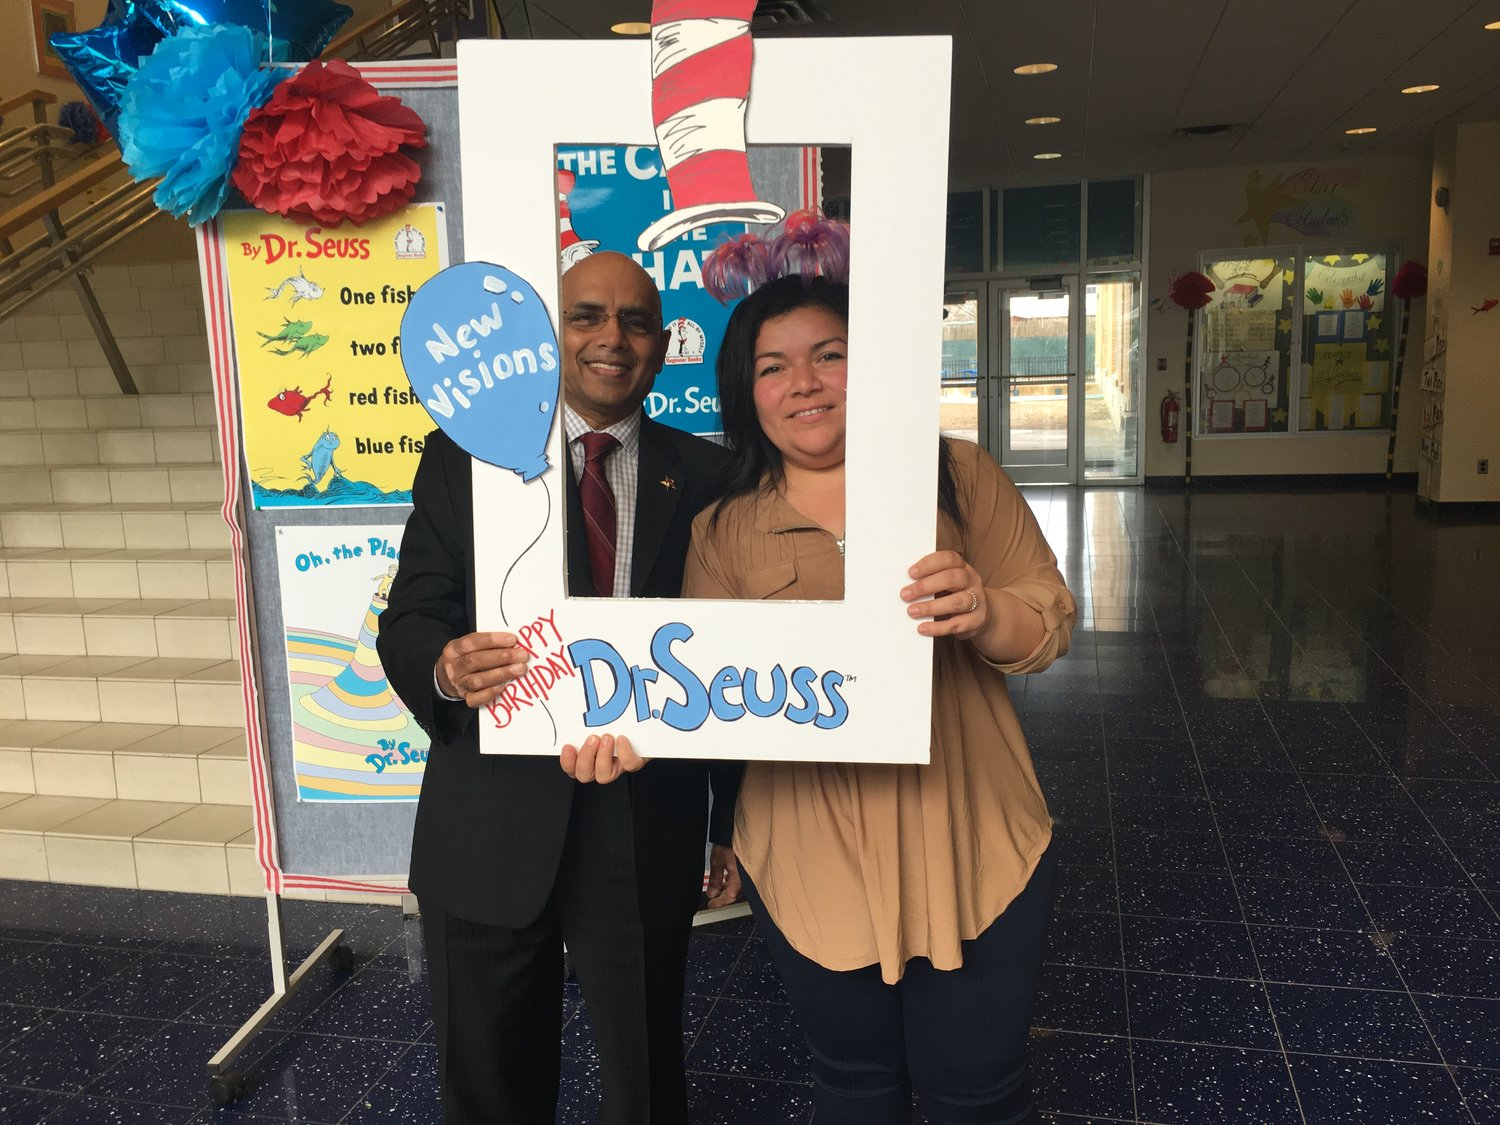 Freeport Public Schools superintendent, Dr. Kishore Kuncham, left, celebrated with Jordan-Awalom Dr. Seuss Day with Jordan-Awalom.